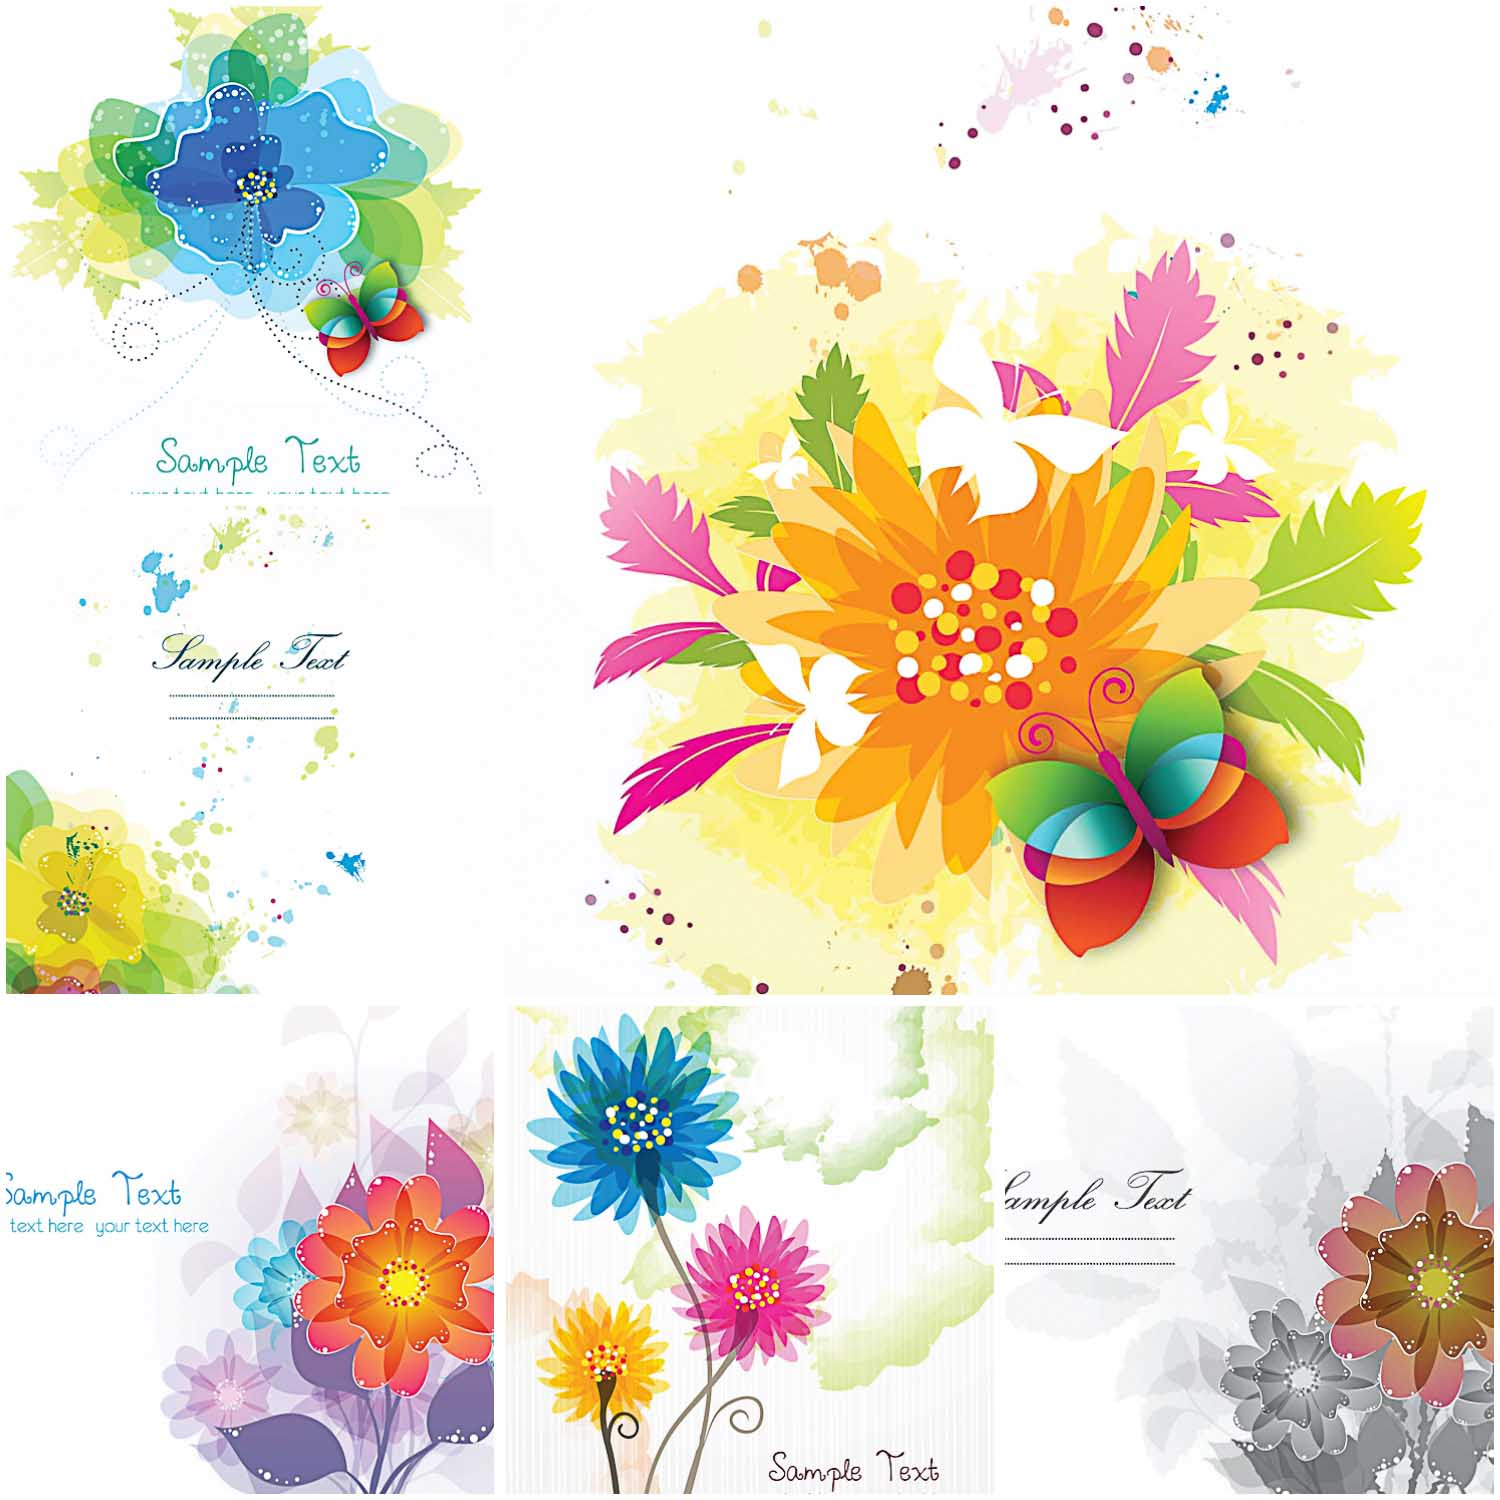 Wonderful floral greeting cards with bright colors